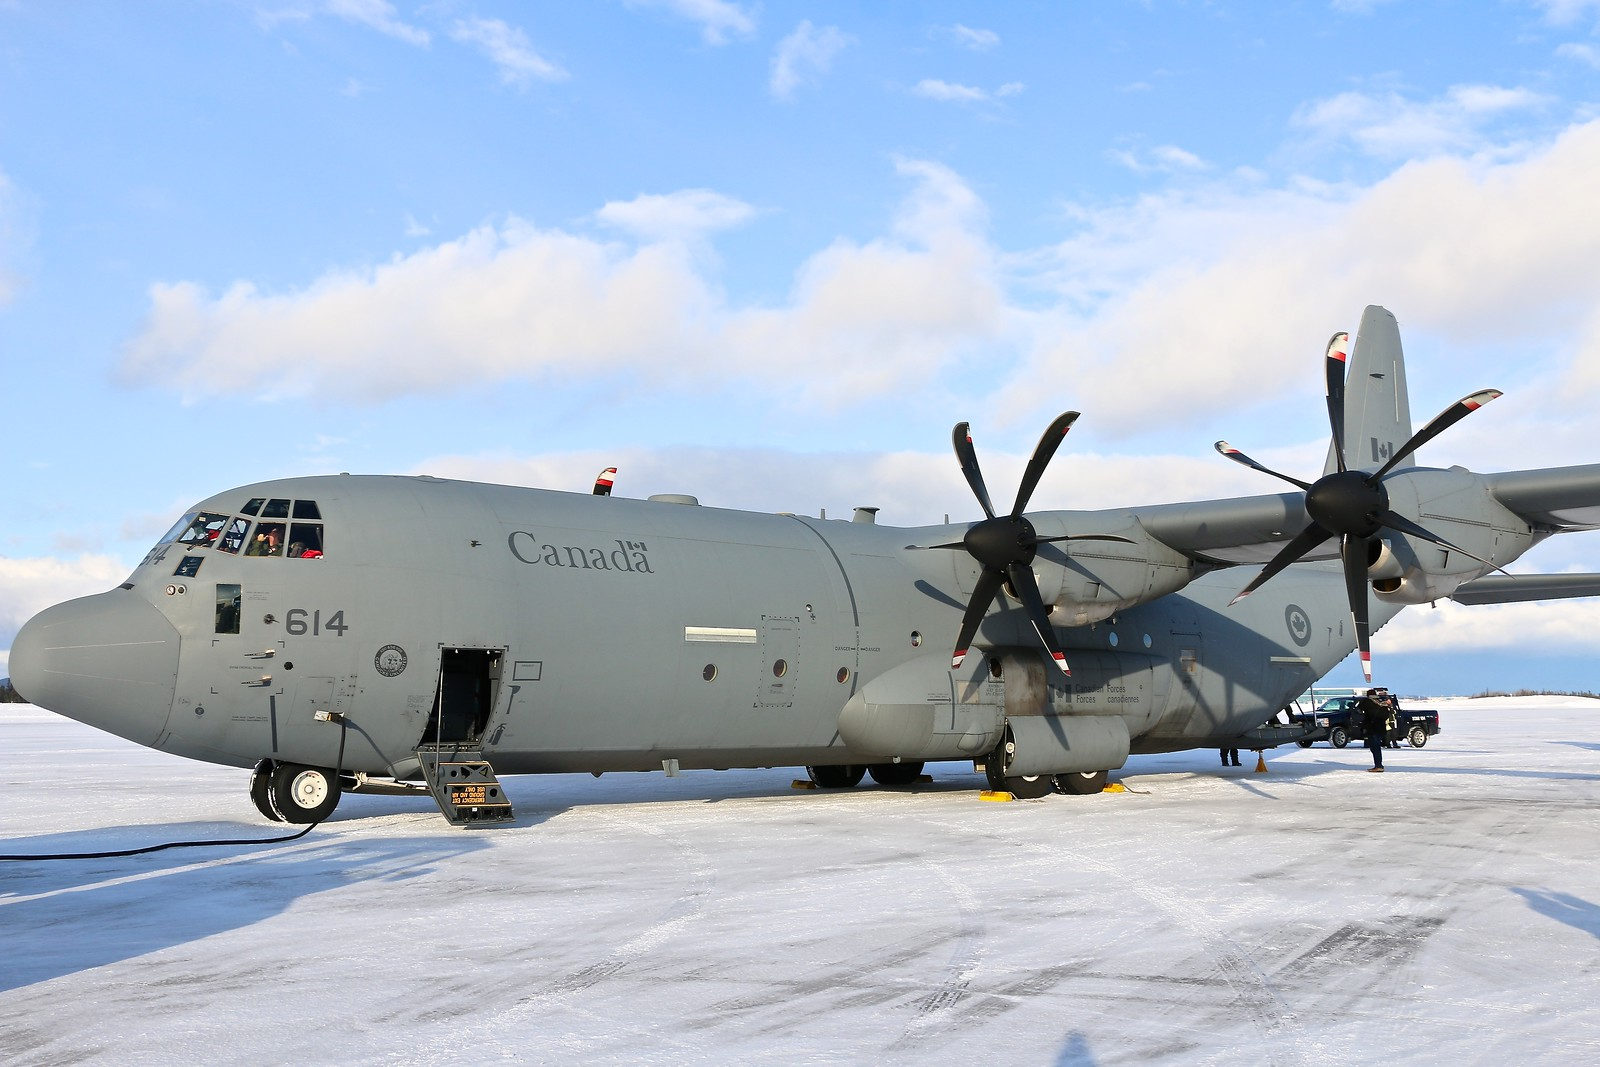 A CC-130J Hercules transporting pallets of toys, rests on the tarmac at Goose Bay, Newfoundland and Labrador, on December 7, 2017. PHOTO: Makala Chapman